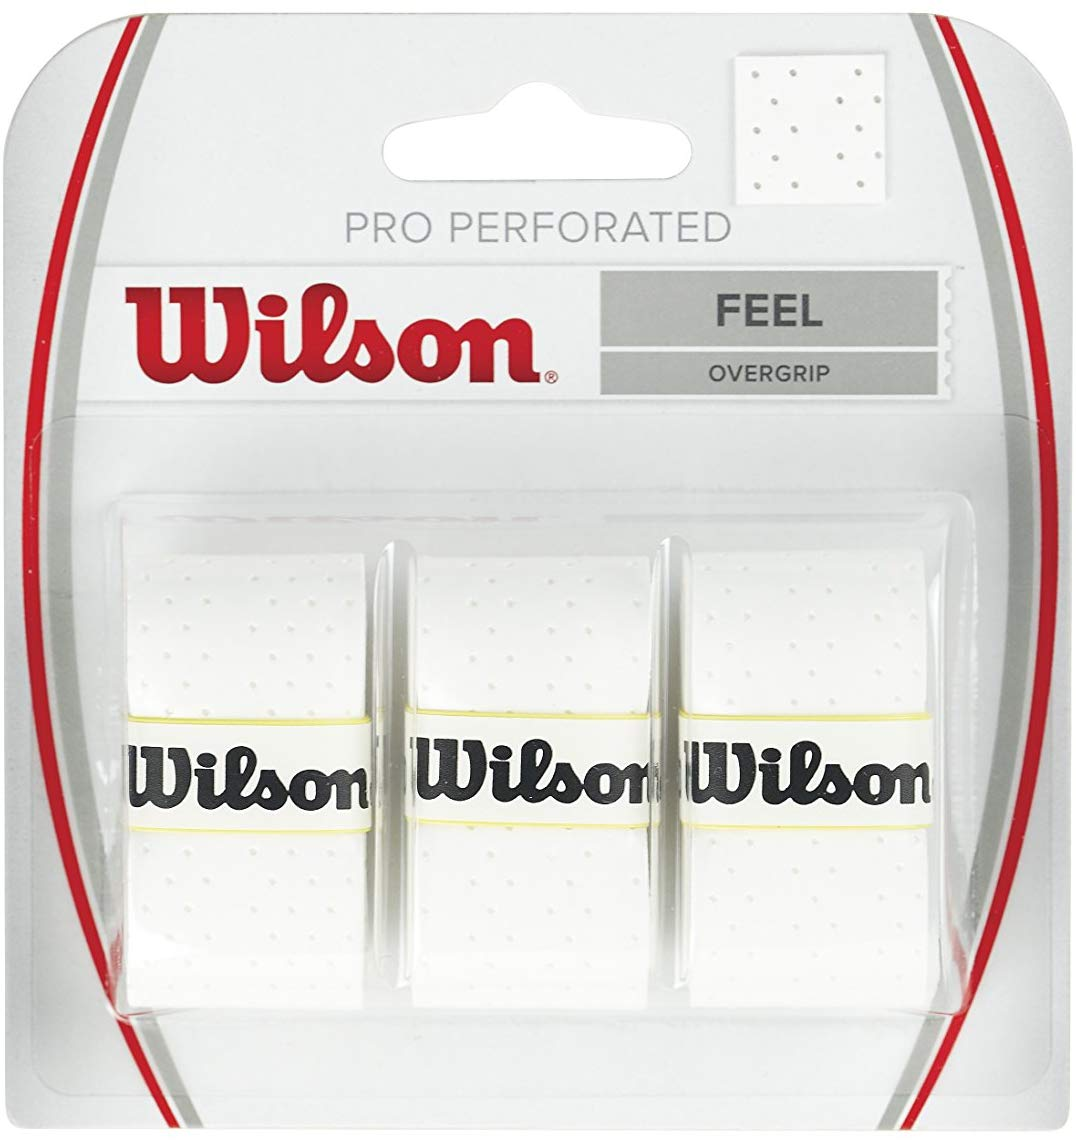 Overgrip Wilson Pro Perforated Feel - Cores